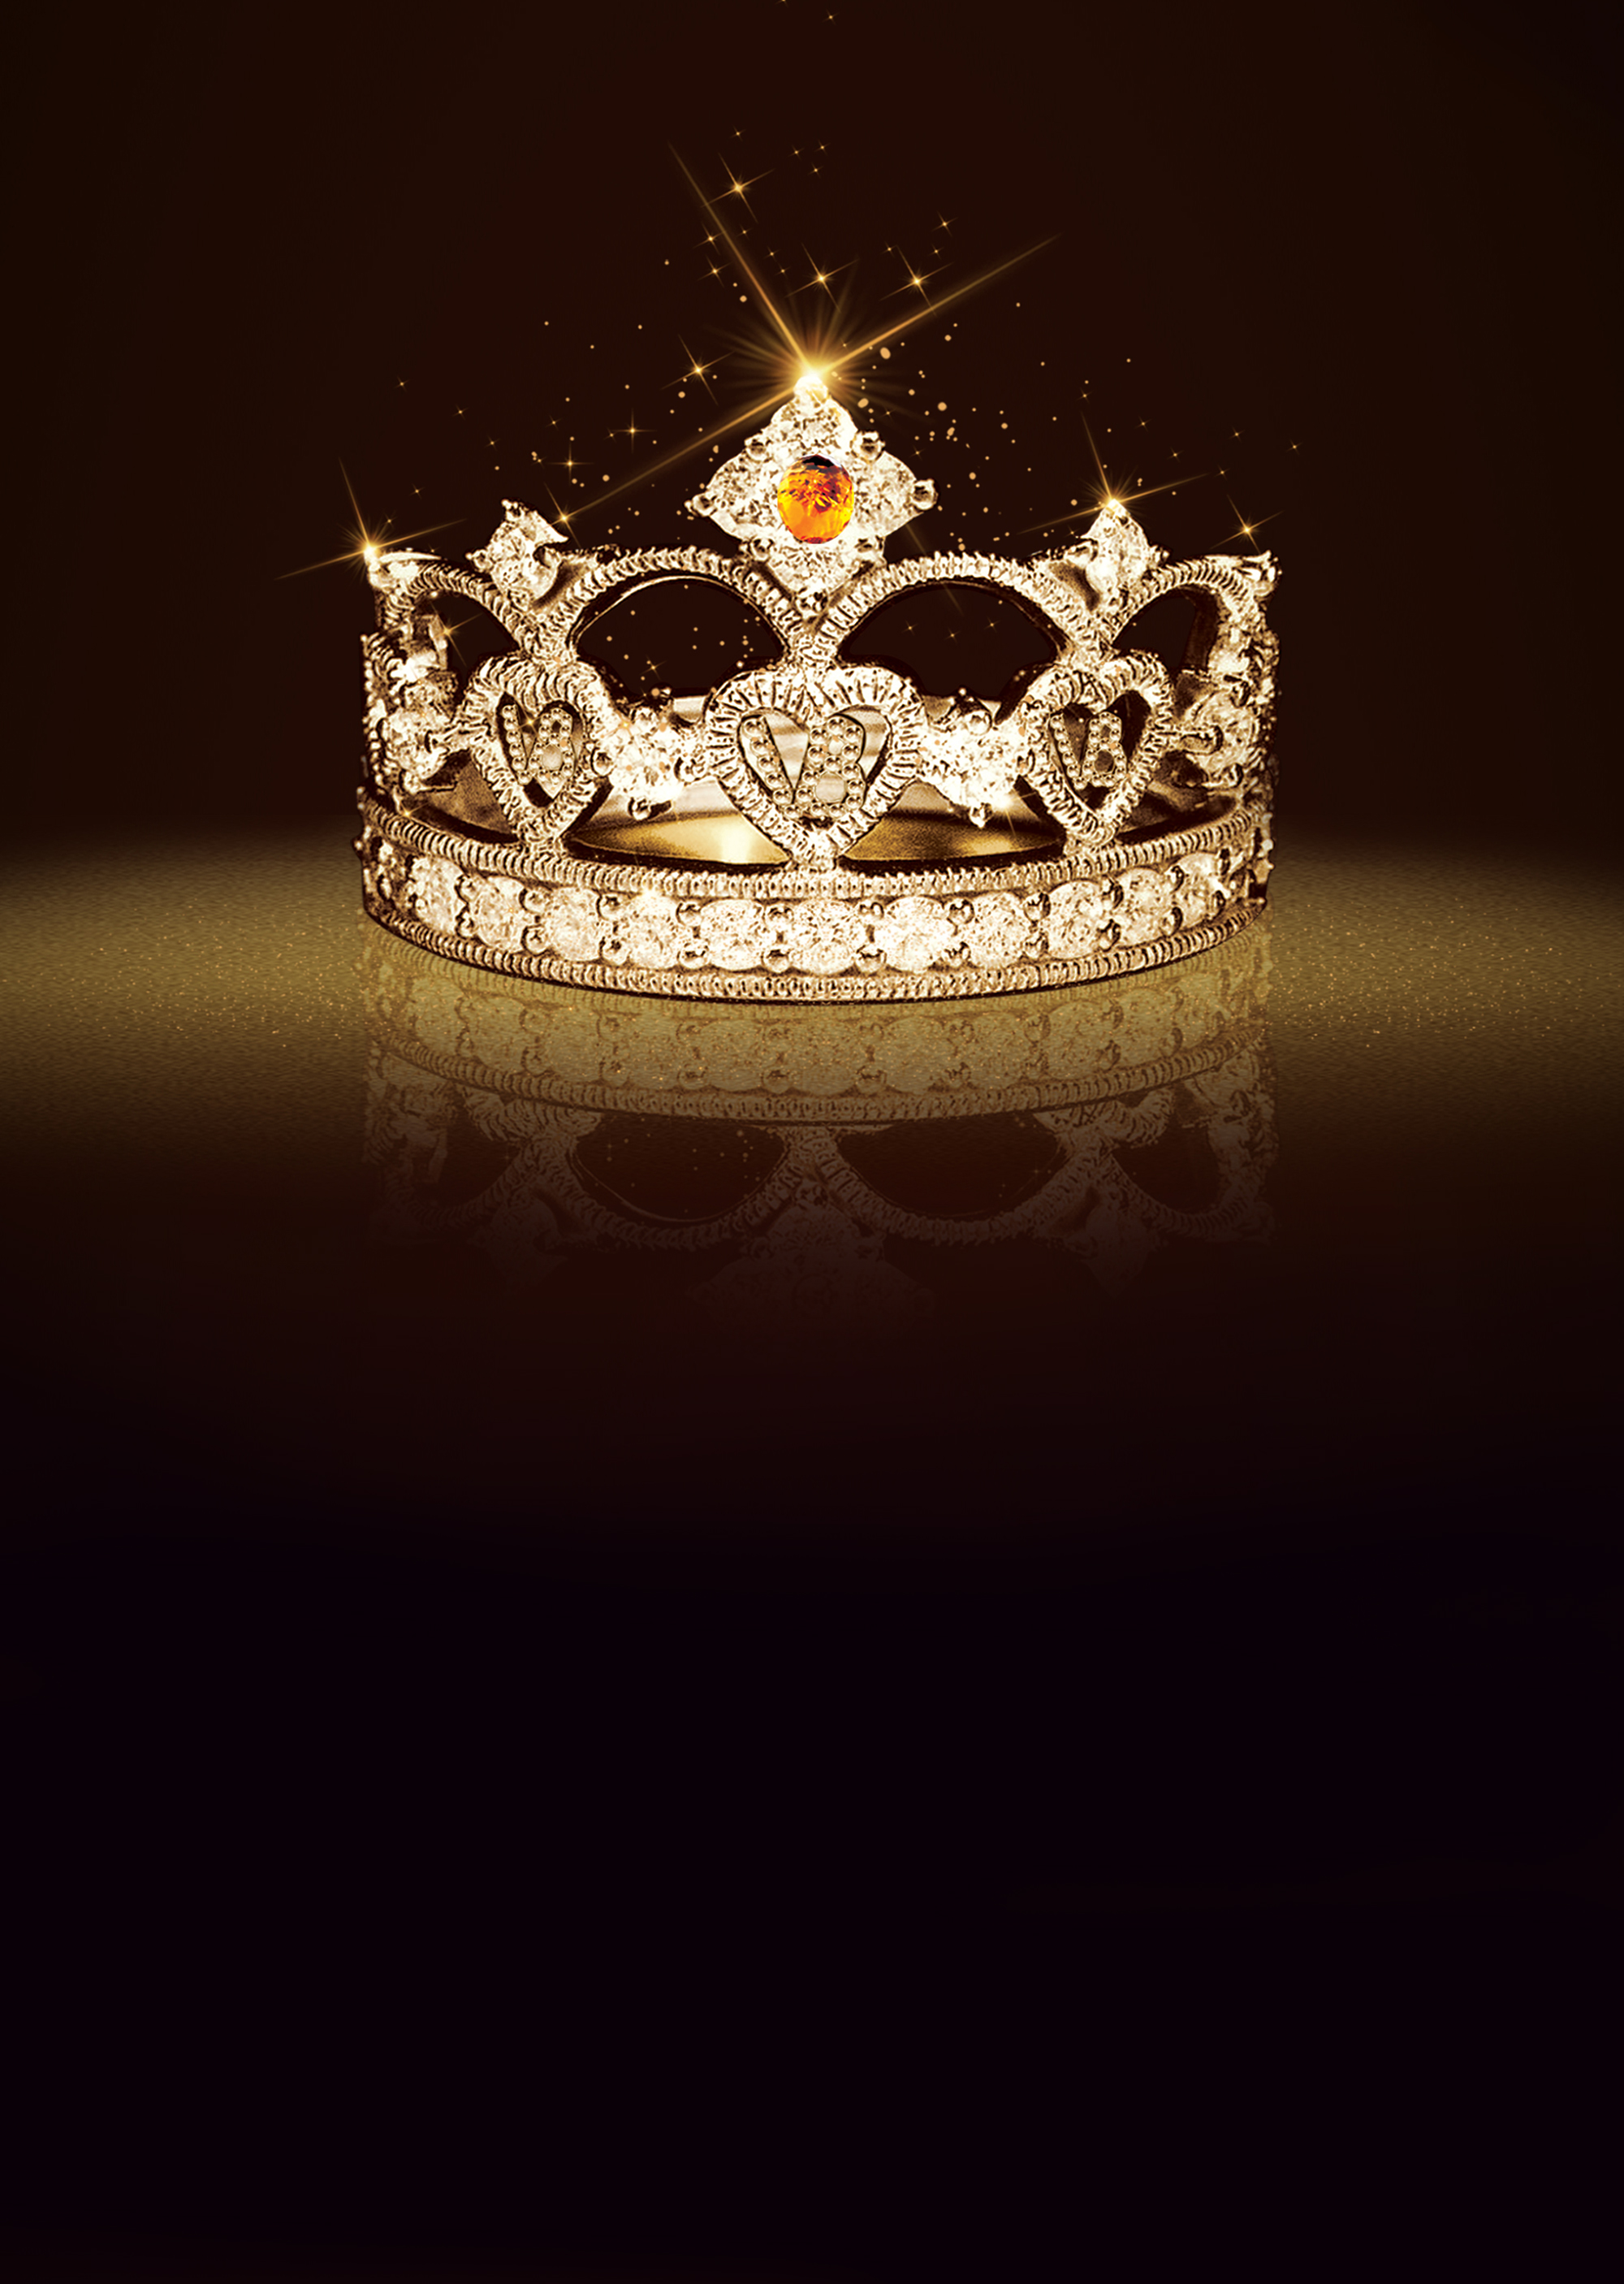 Crown Cosmetics Background Poster Queen Crown Diamond Background Image For Free Download